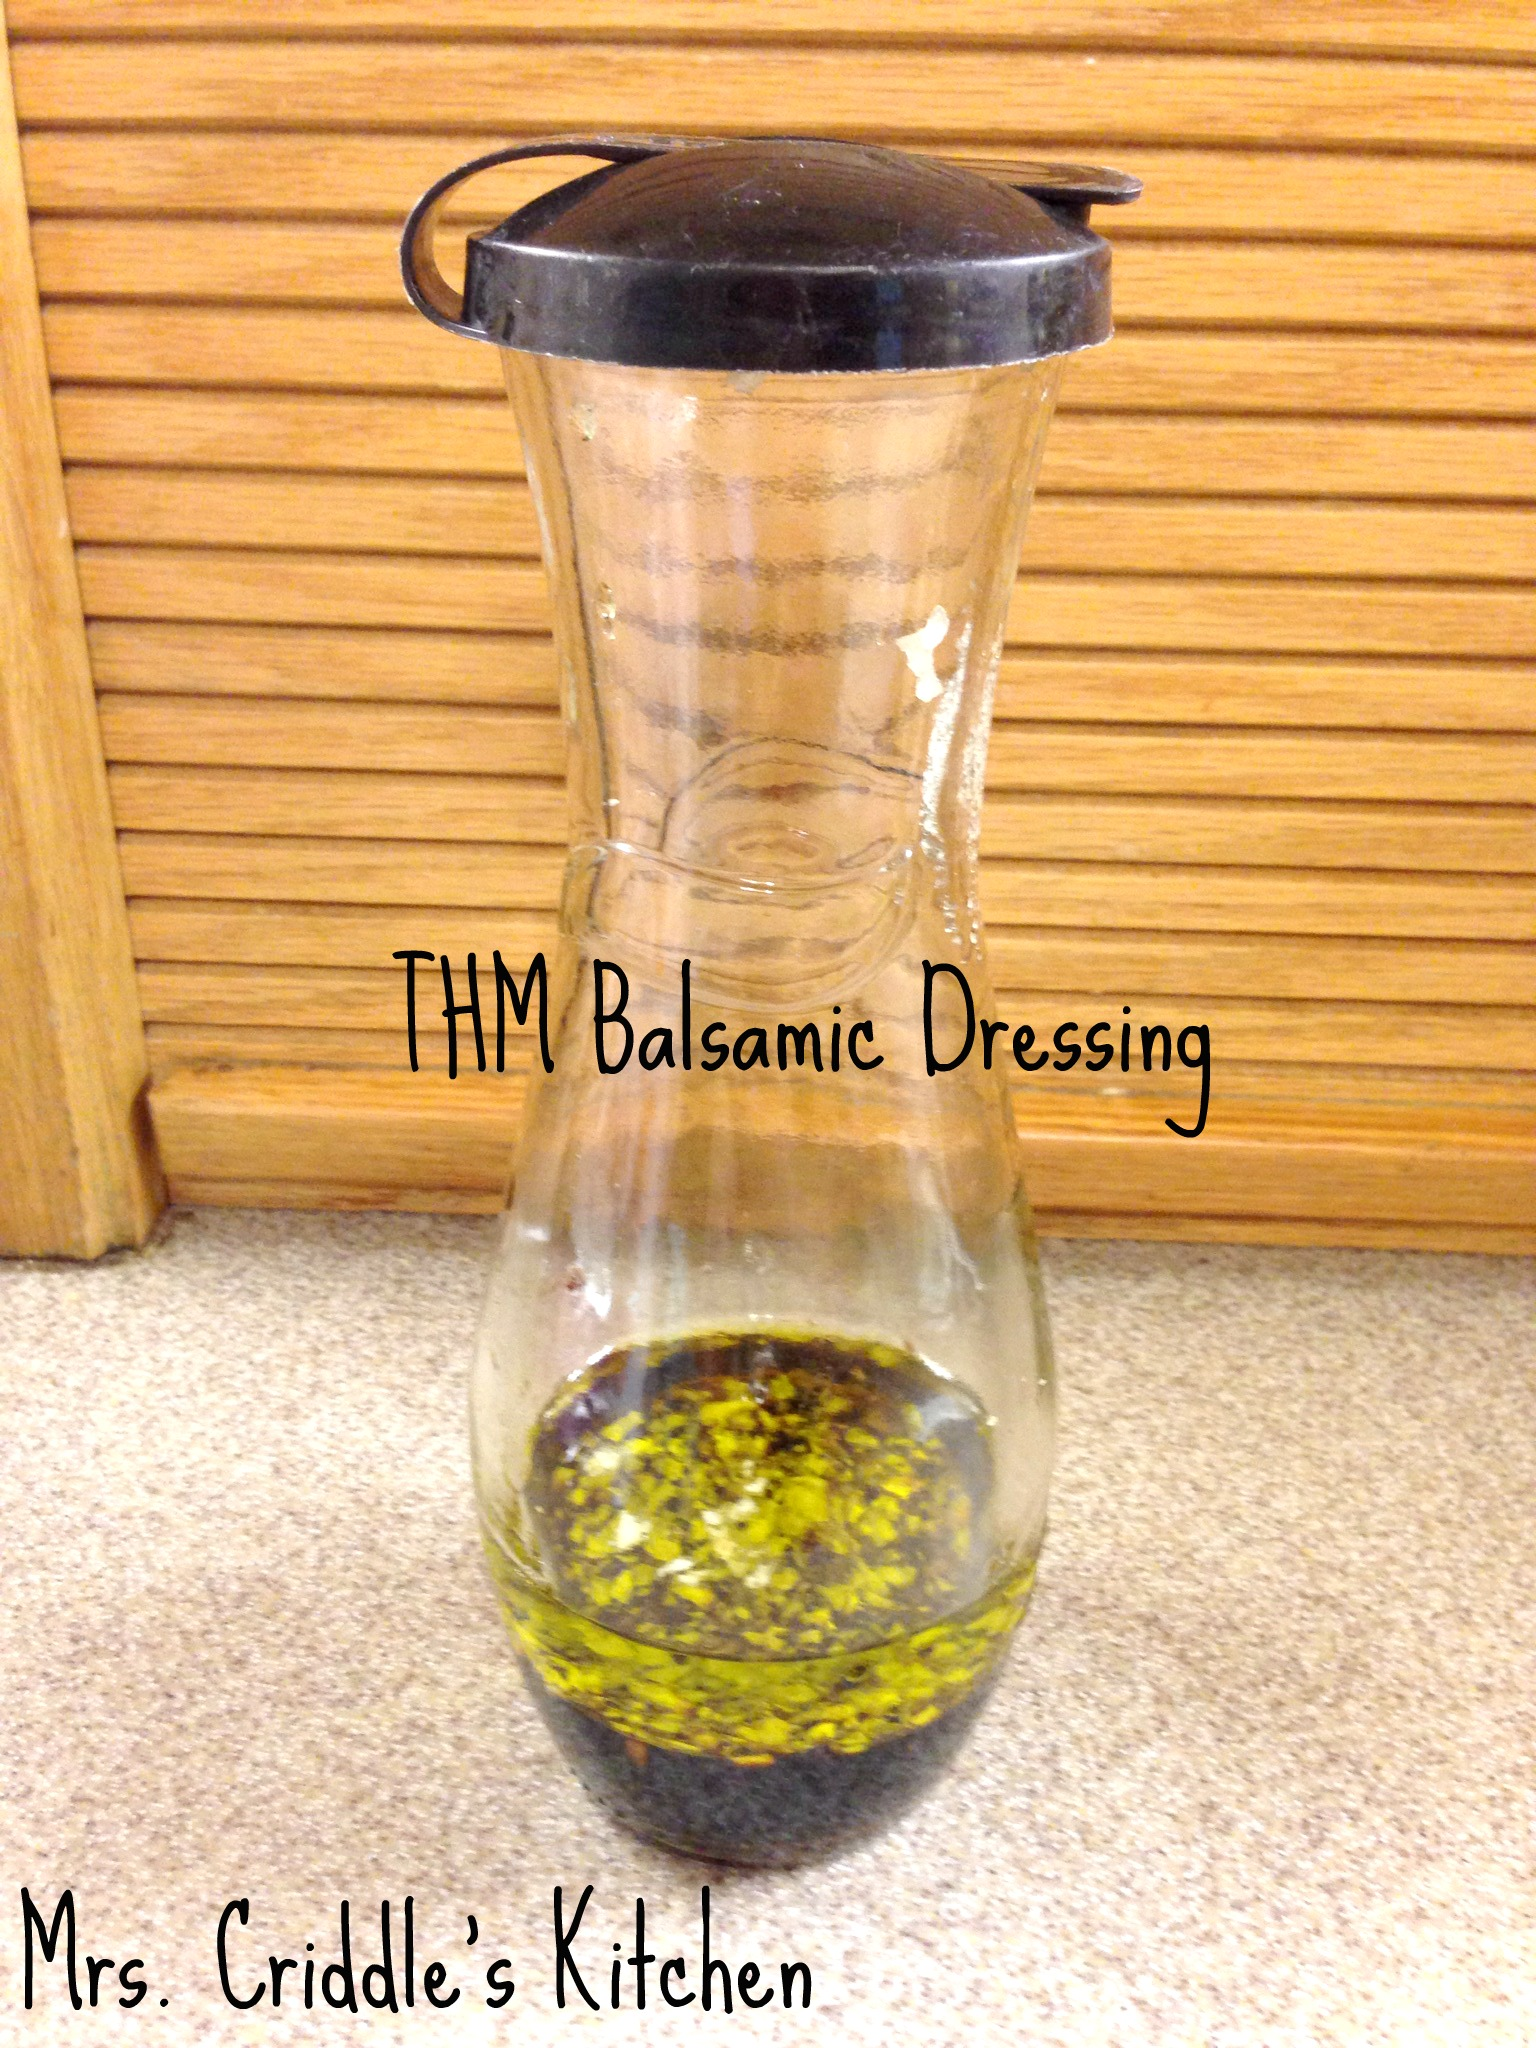 THM Balsamic Dressing